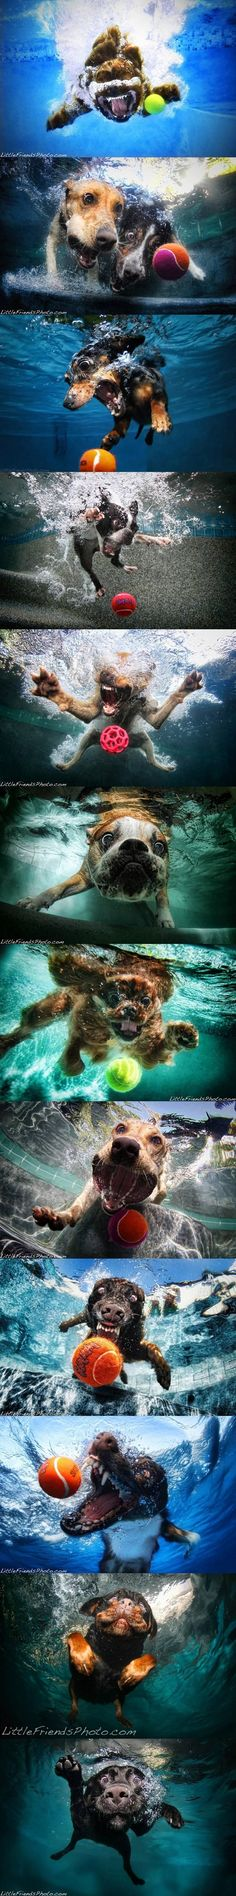 Underwater dogs photography